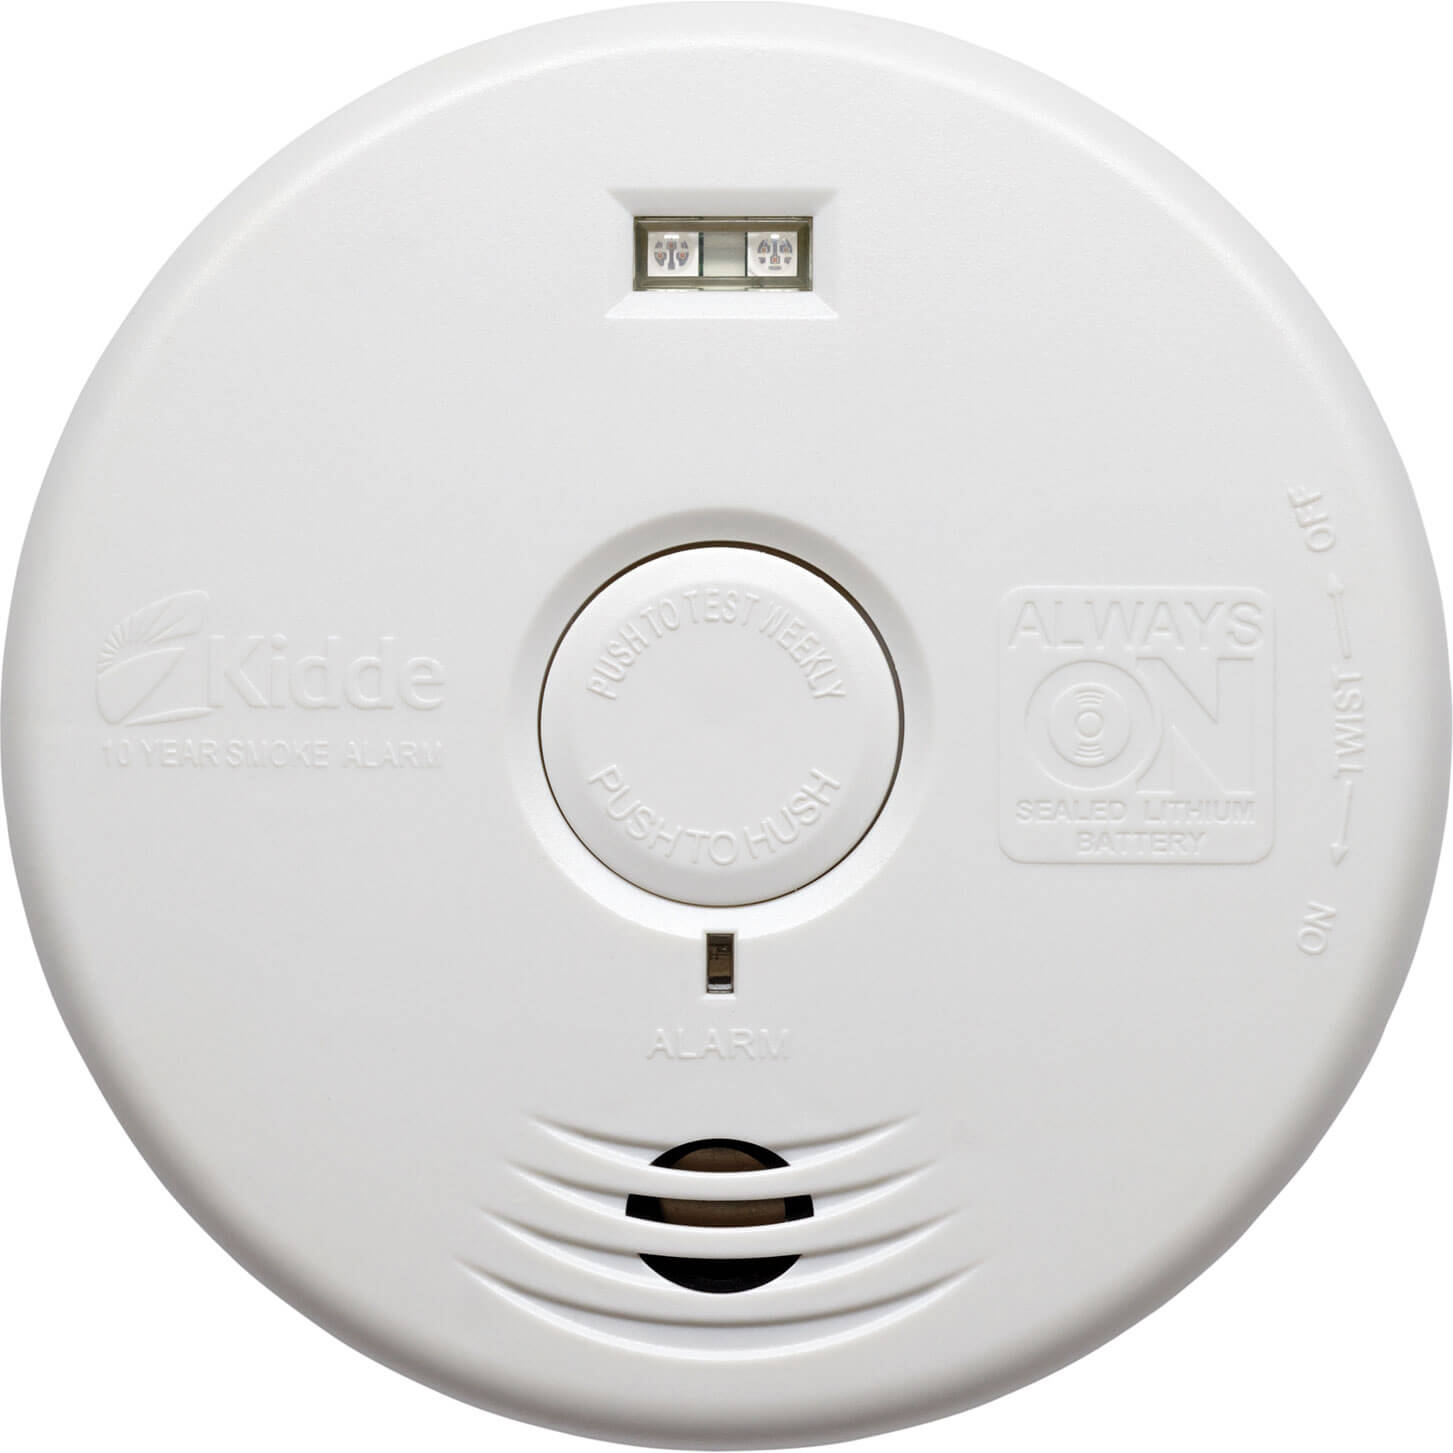 Image of Kidde Homeprotect Hallways Smoke Alarm